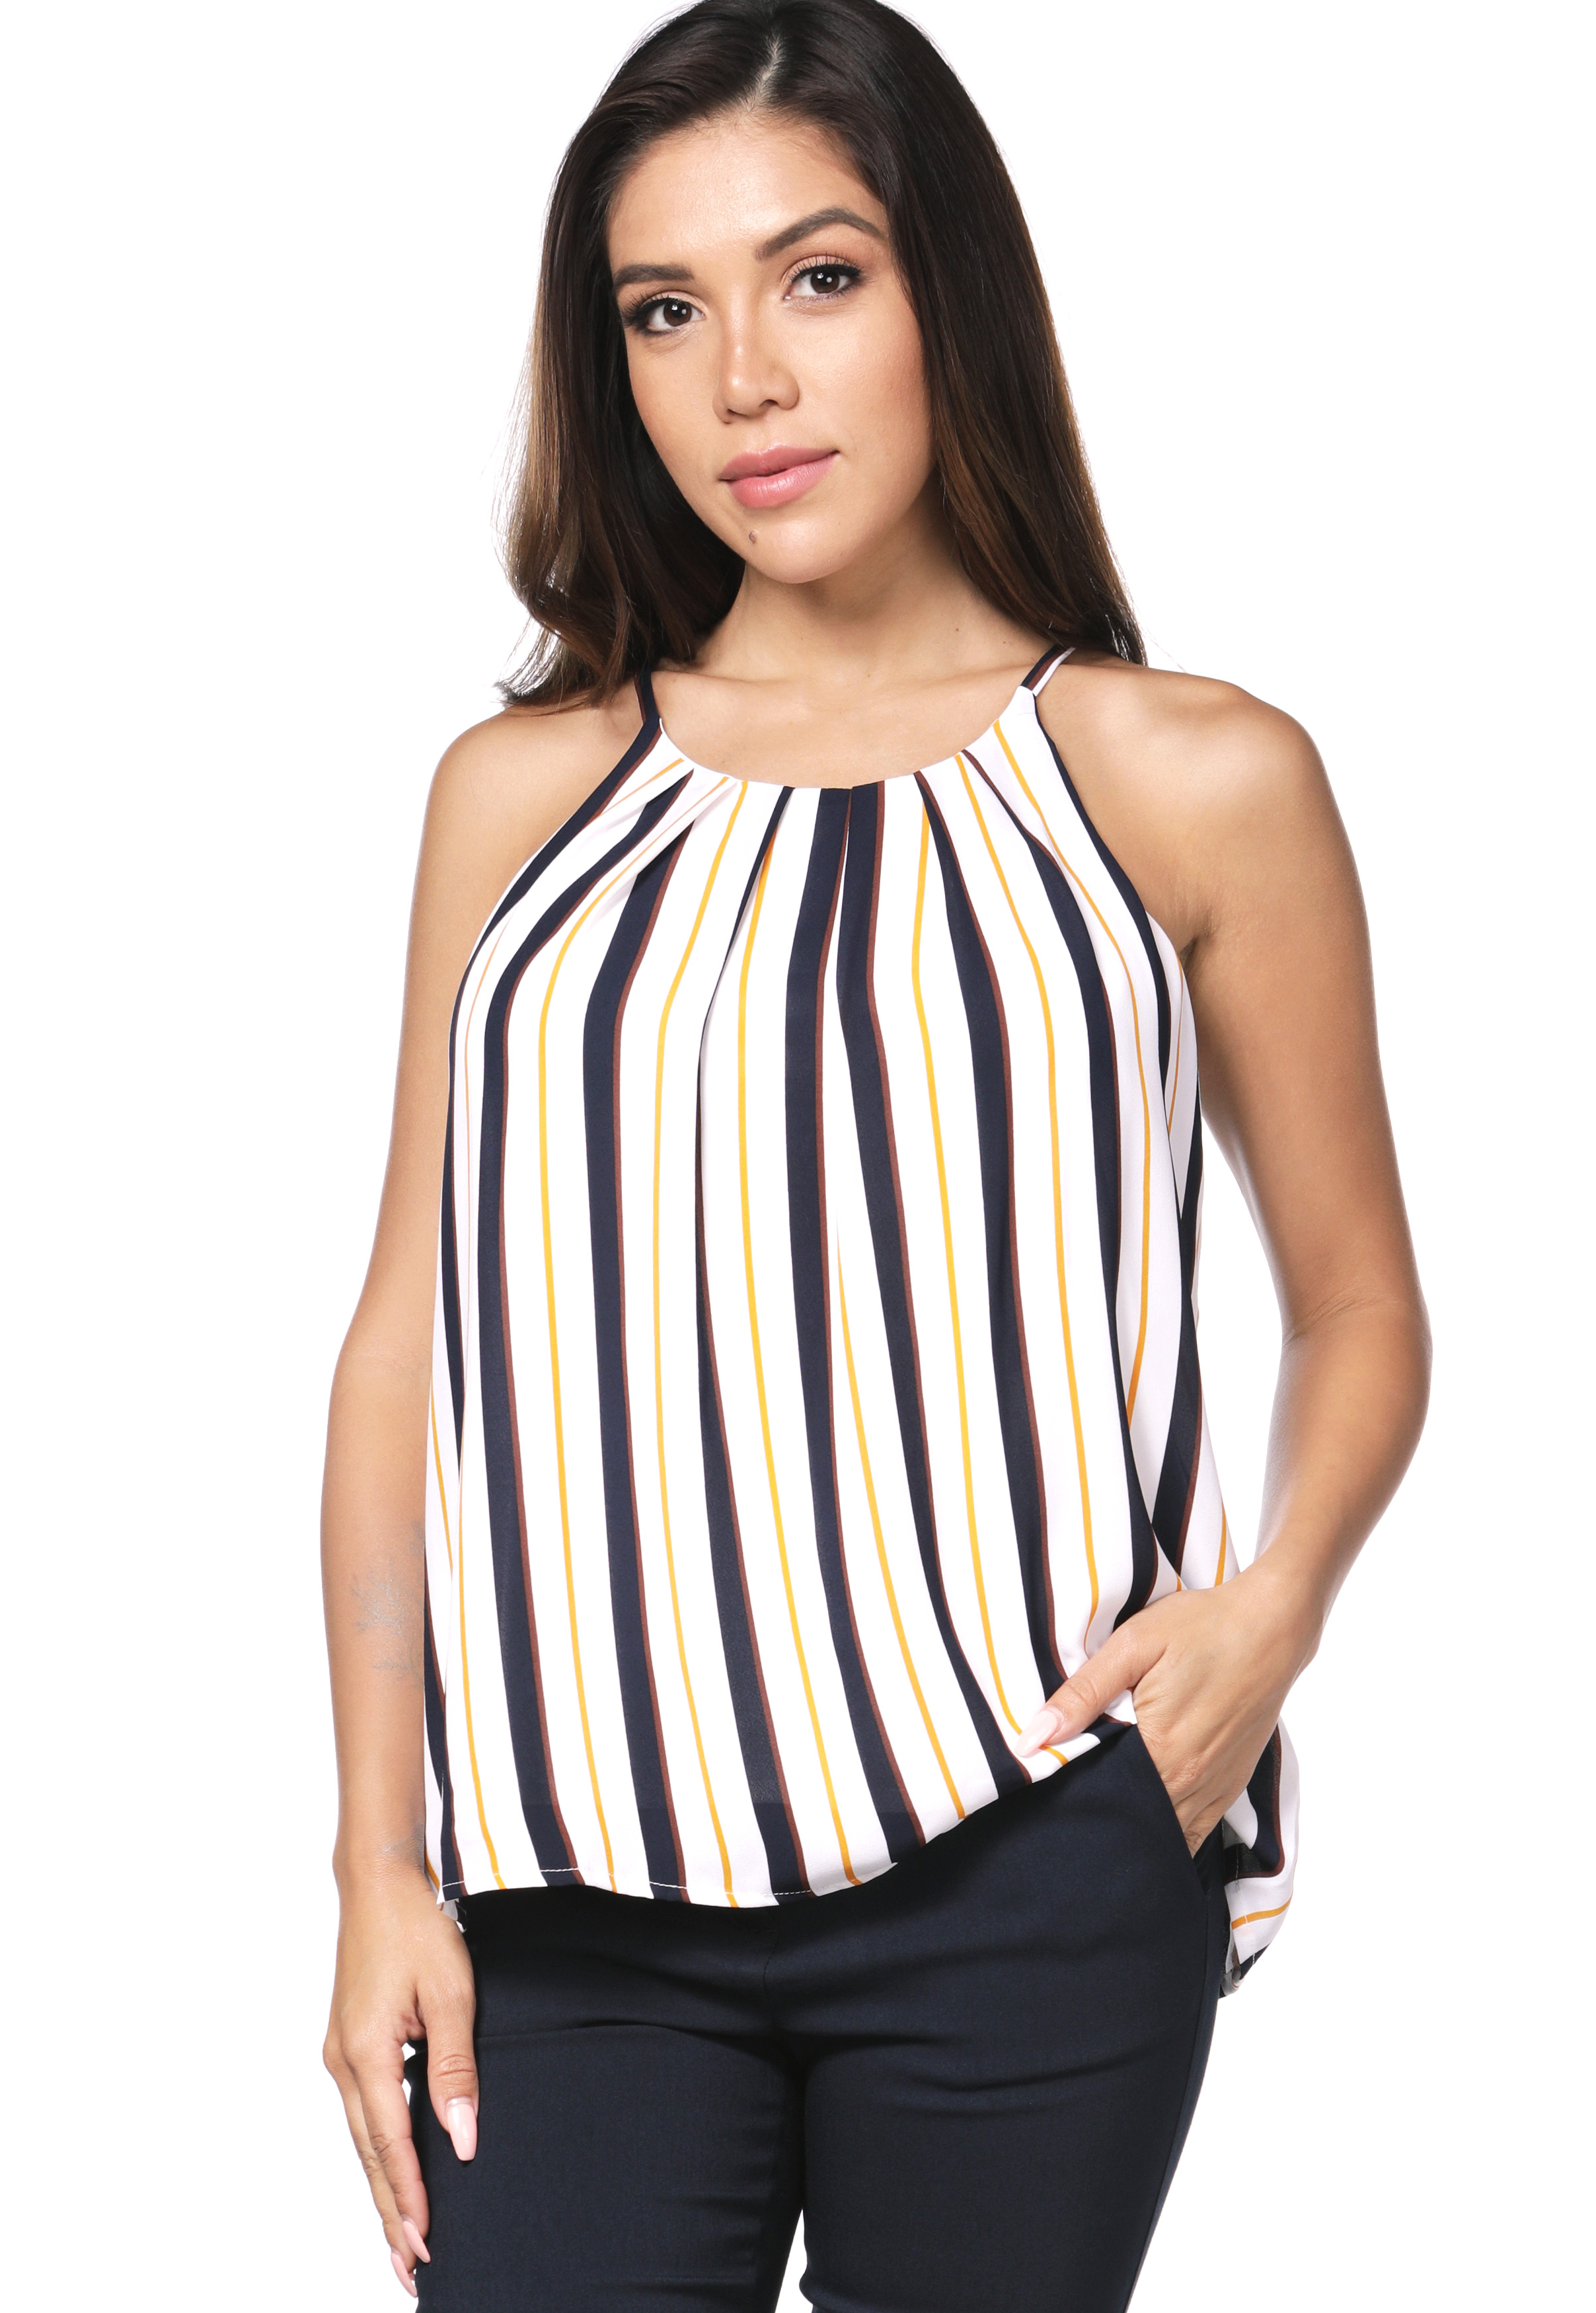 Pinstriped Chiffon Top